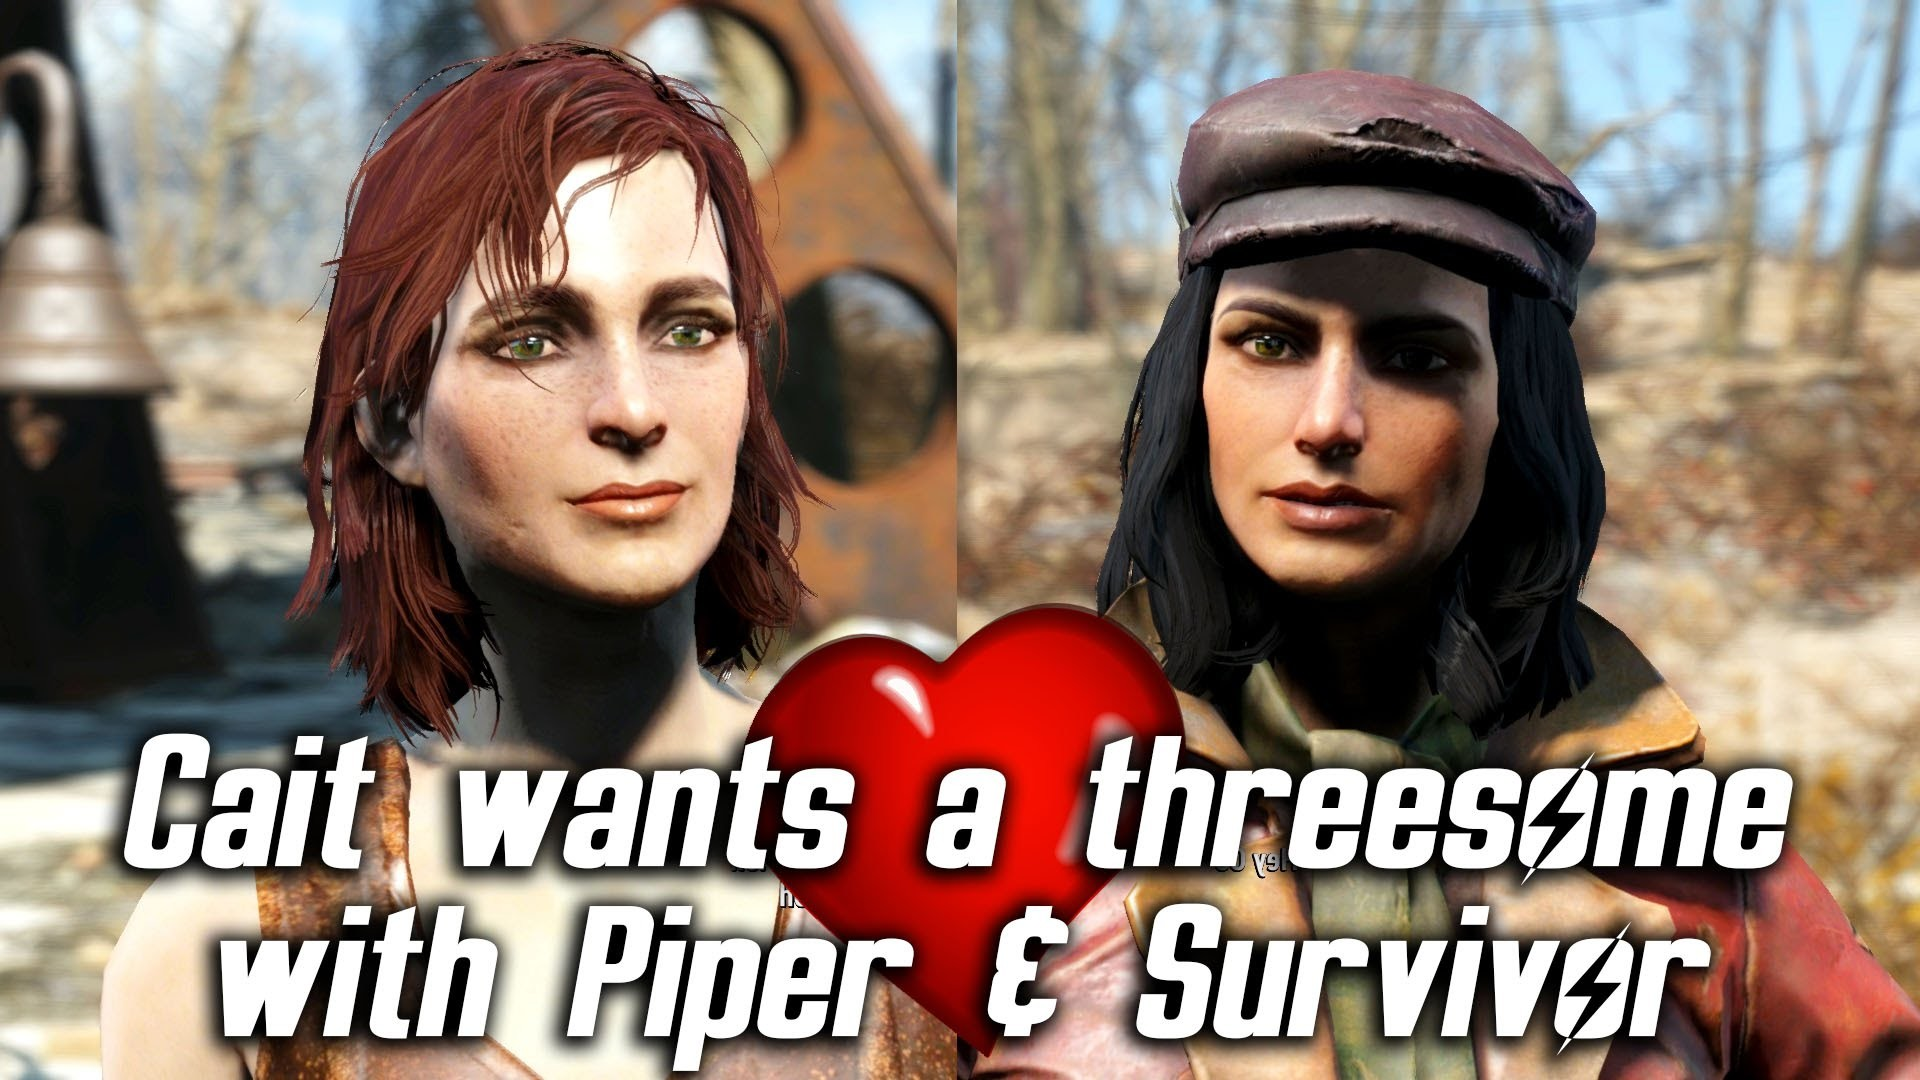 Fallout 4 – Cait wants a threesome with Piper & Sole Survivor – YouTube